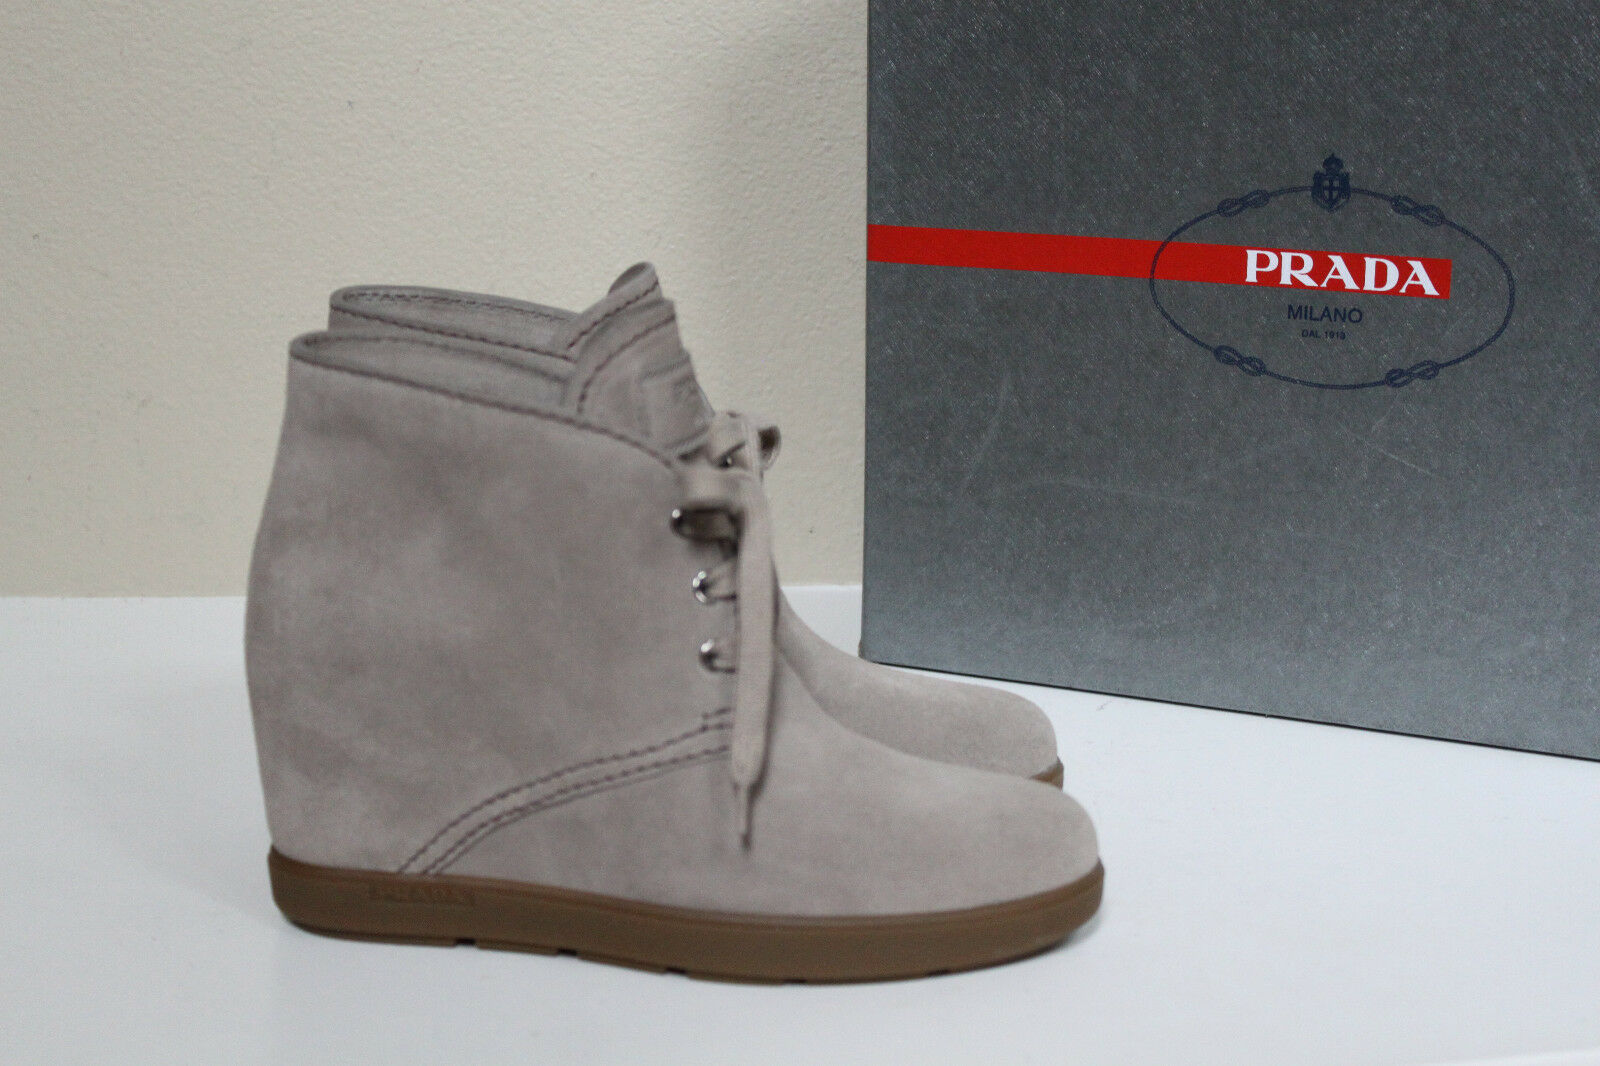 New sz 10.5 40.5 PRADA BEIGE Suede Lace Up Ankle Wedge Bootie Heel Womens Shoes